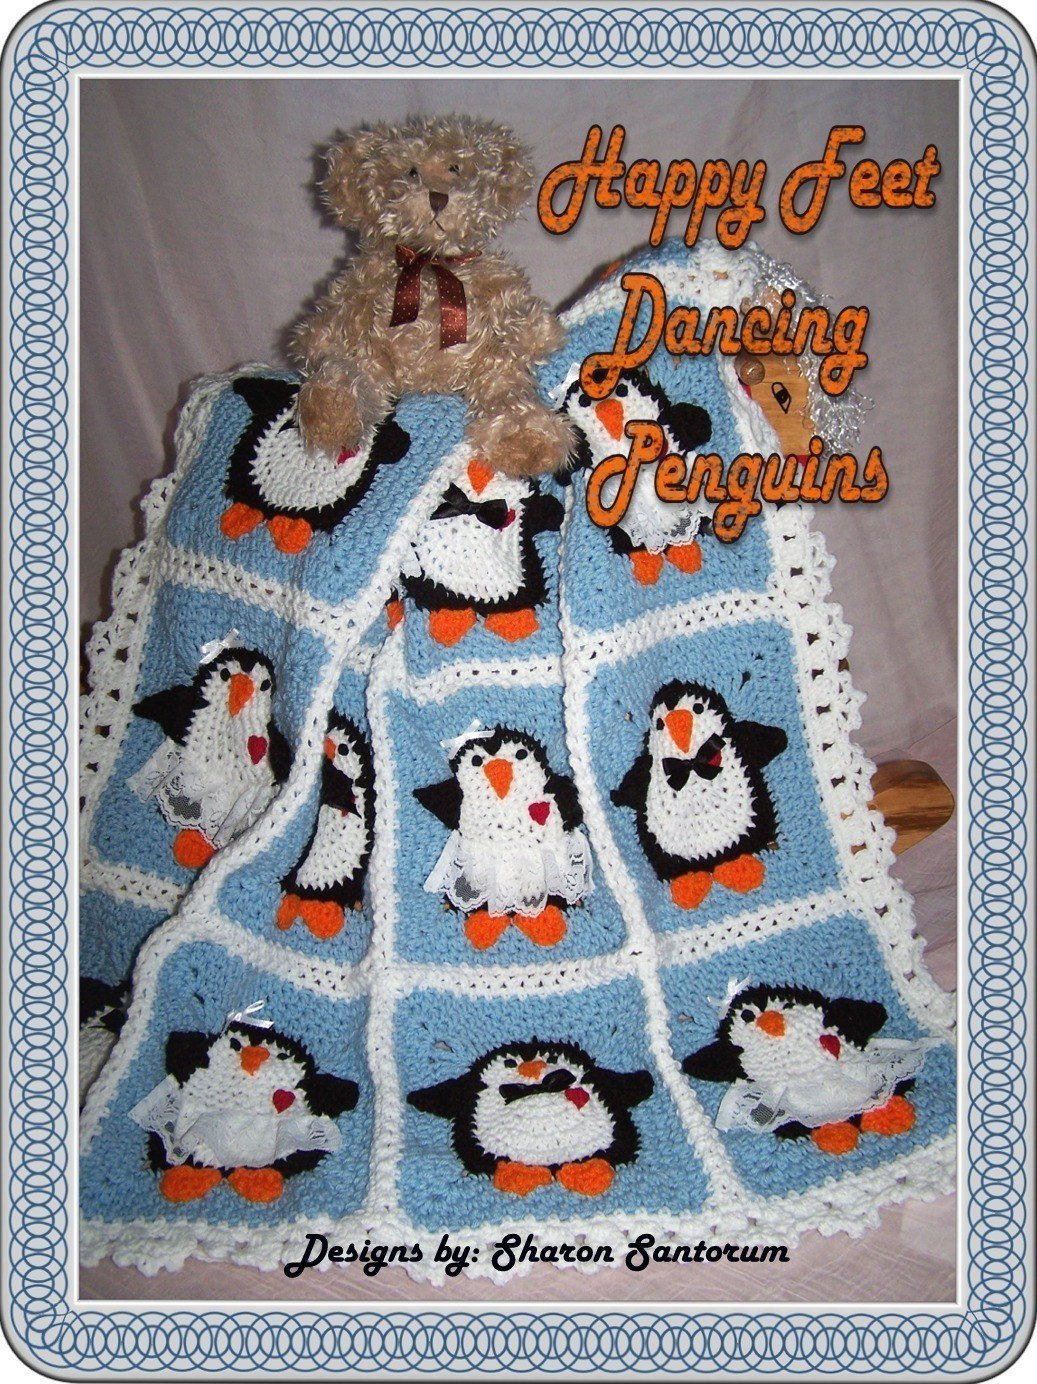 Baby Boy Crochet Blanket Patterns Beautiful Dancing Penguins Crochet Baby Afghan or Blanket Pattern Pdf Of Baby Boy Crochet Blanket Patterns Inspirational Turquoise Baby Blanket Chunky Crochet Blanket for Baby Boy